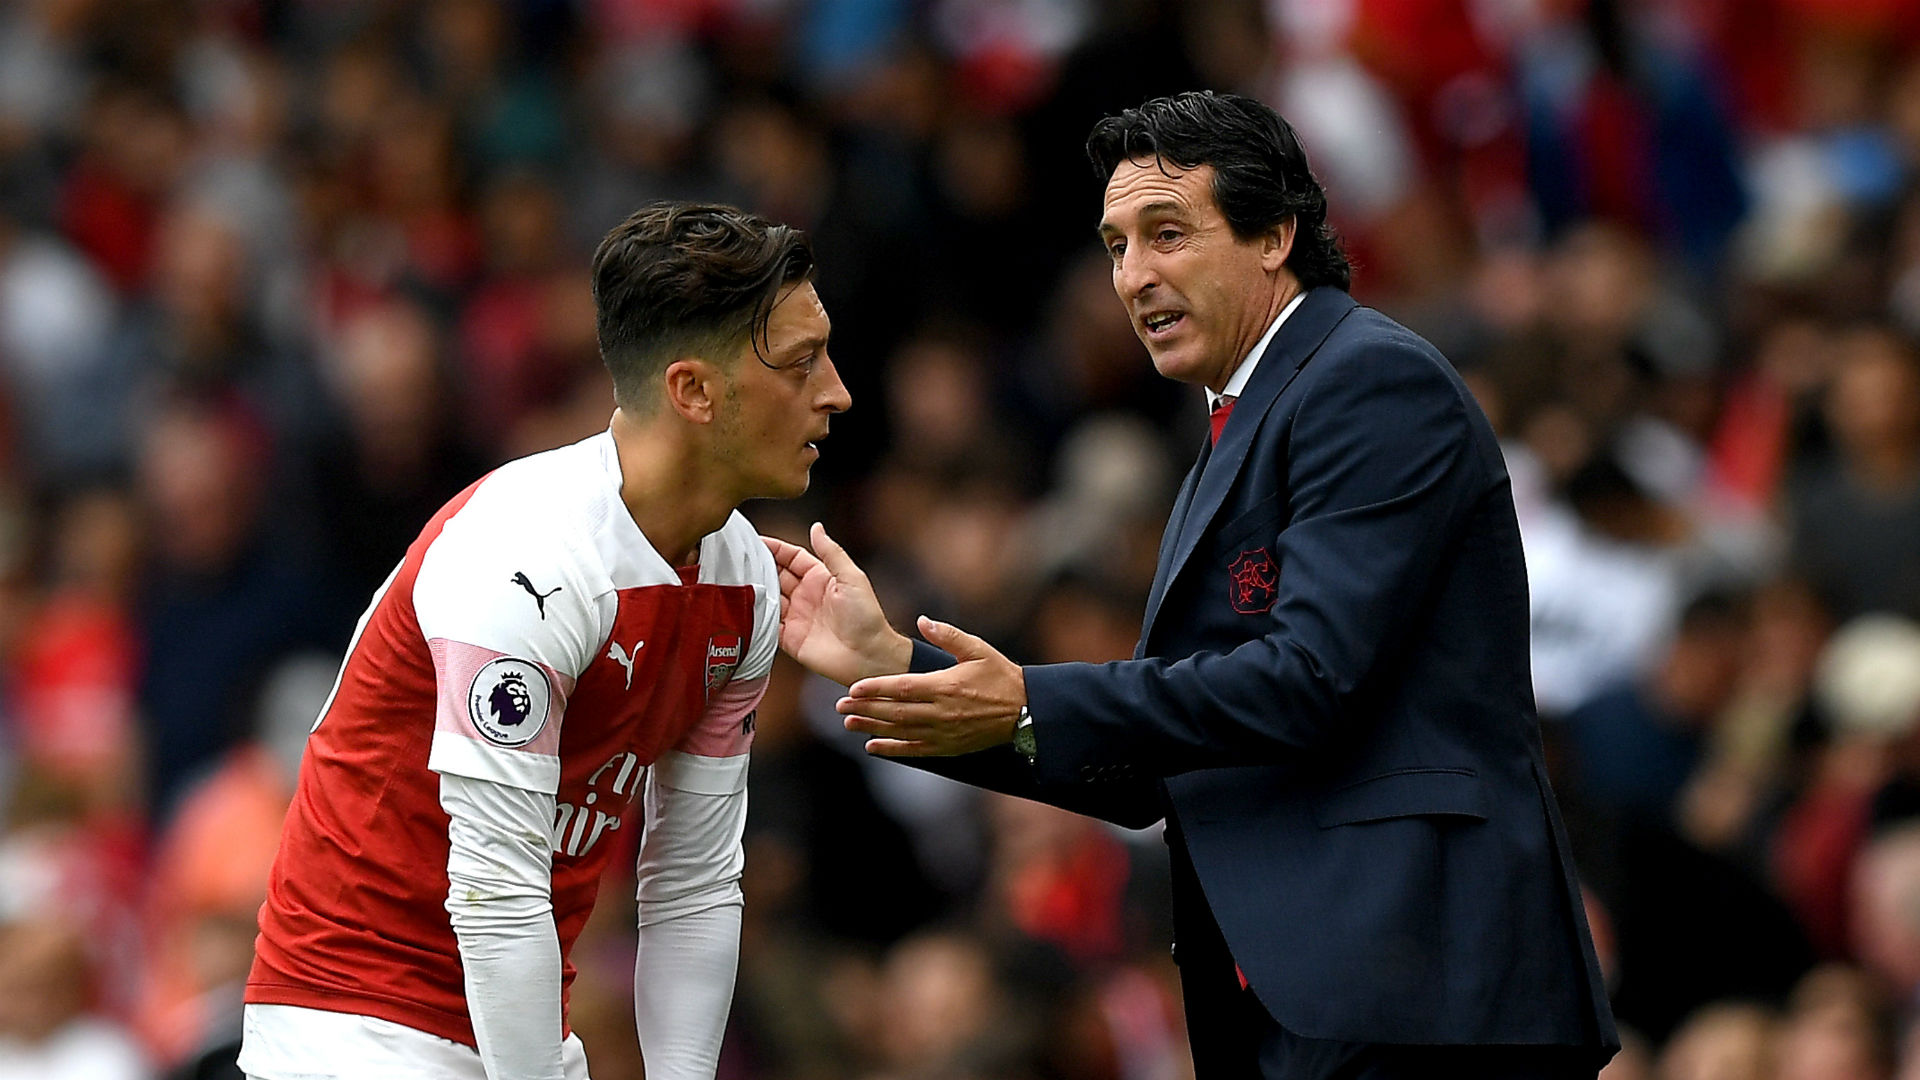 Why Unai Emery sidelined Mesut Ozil in Arsenal